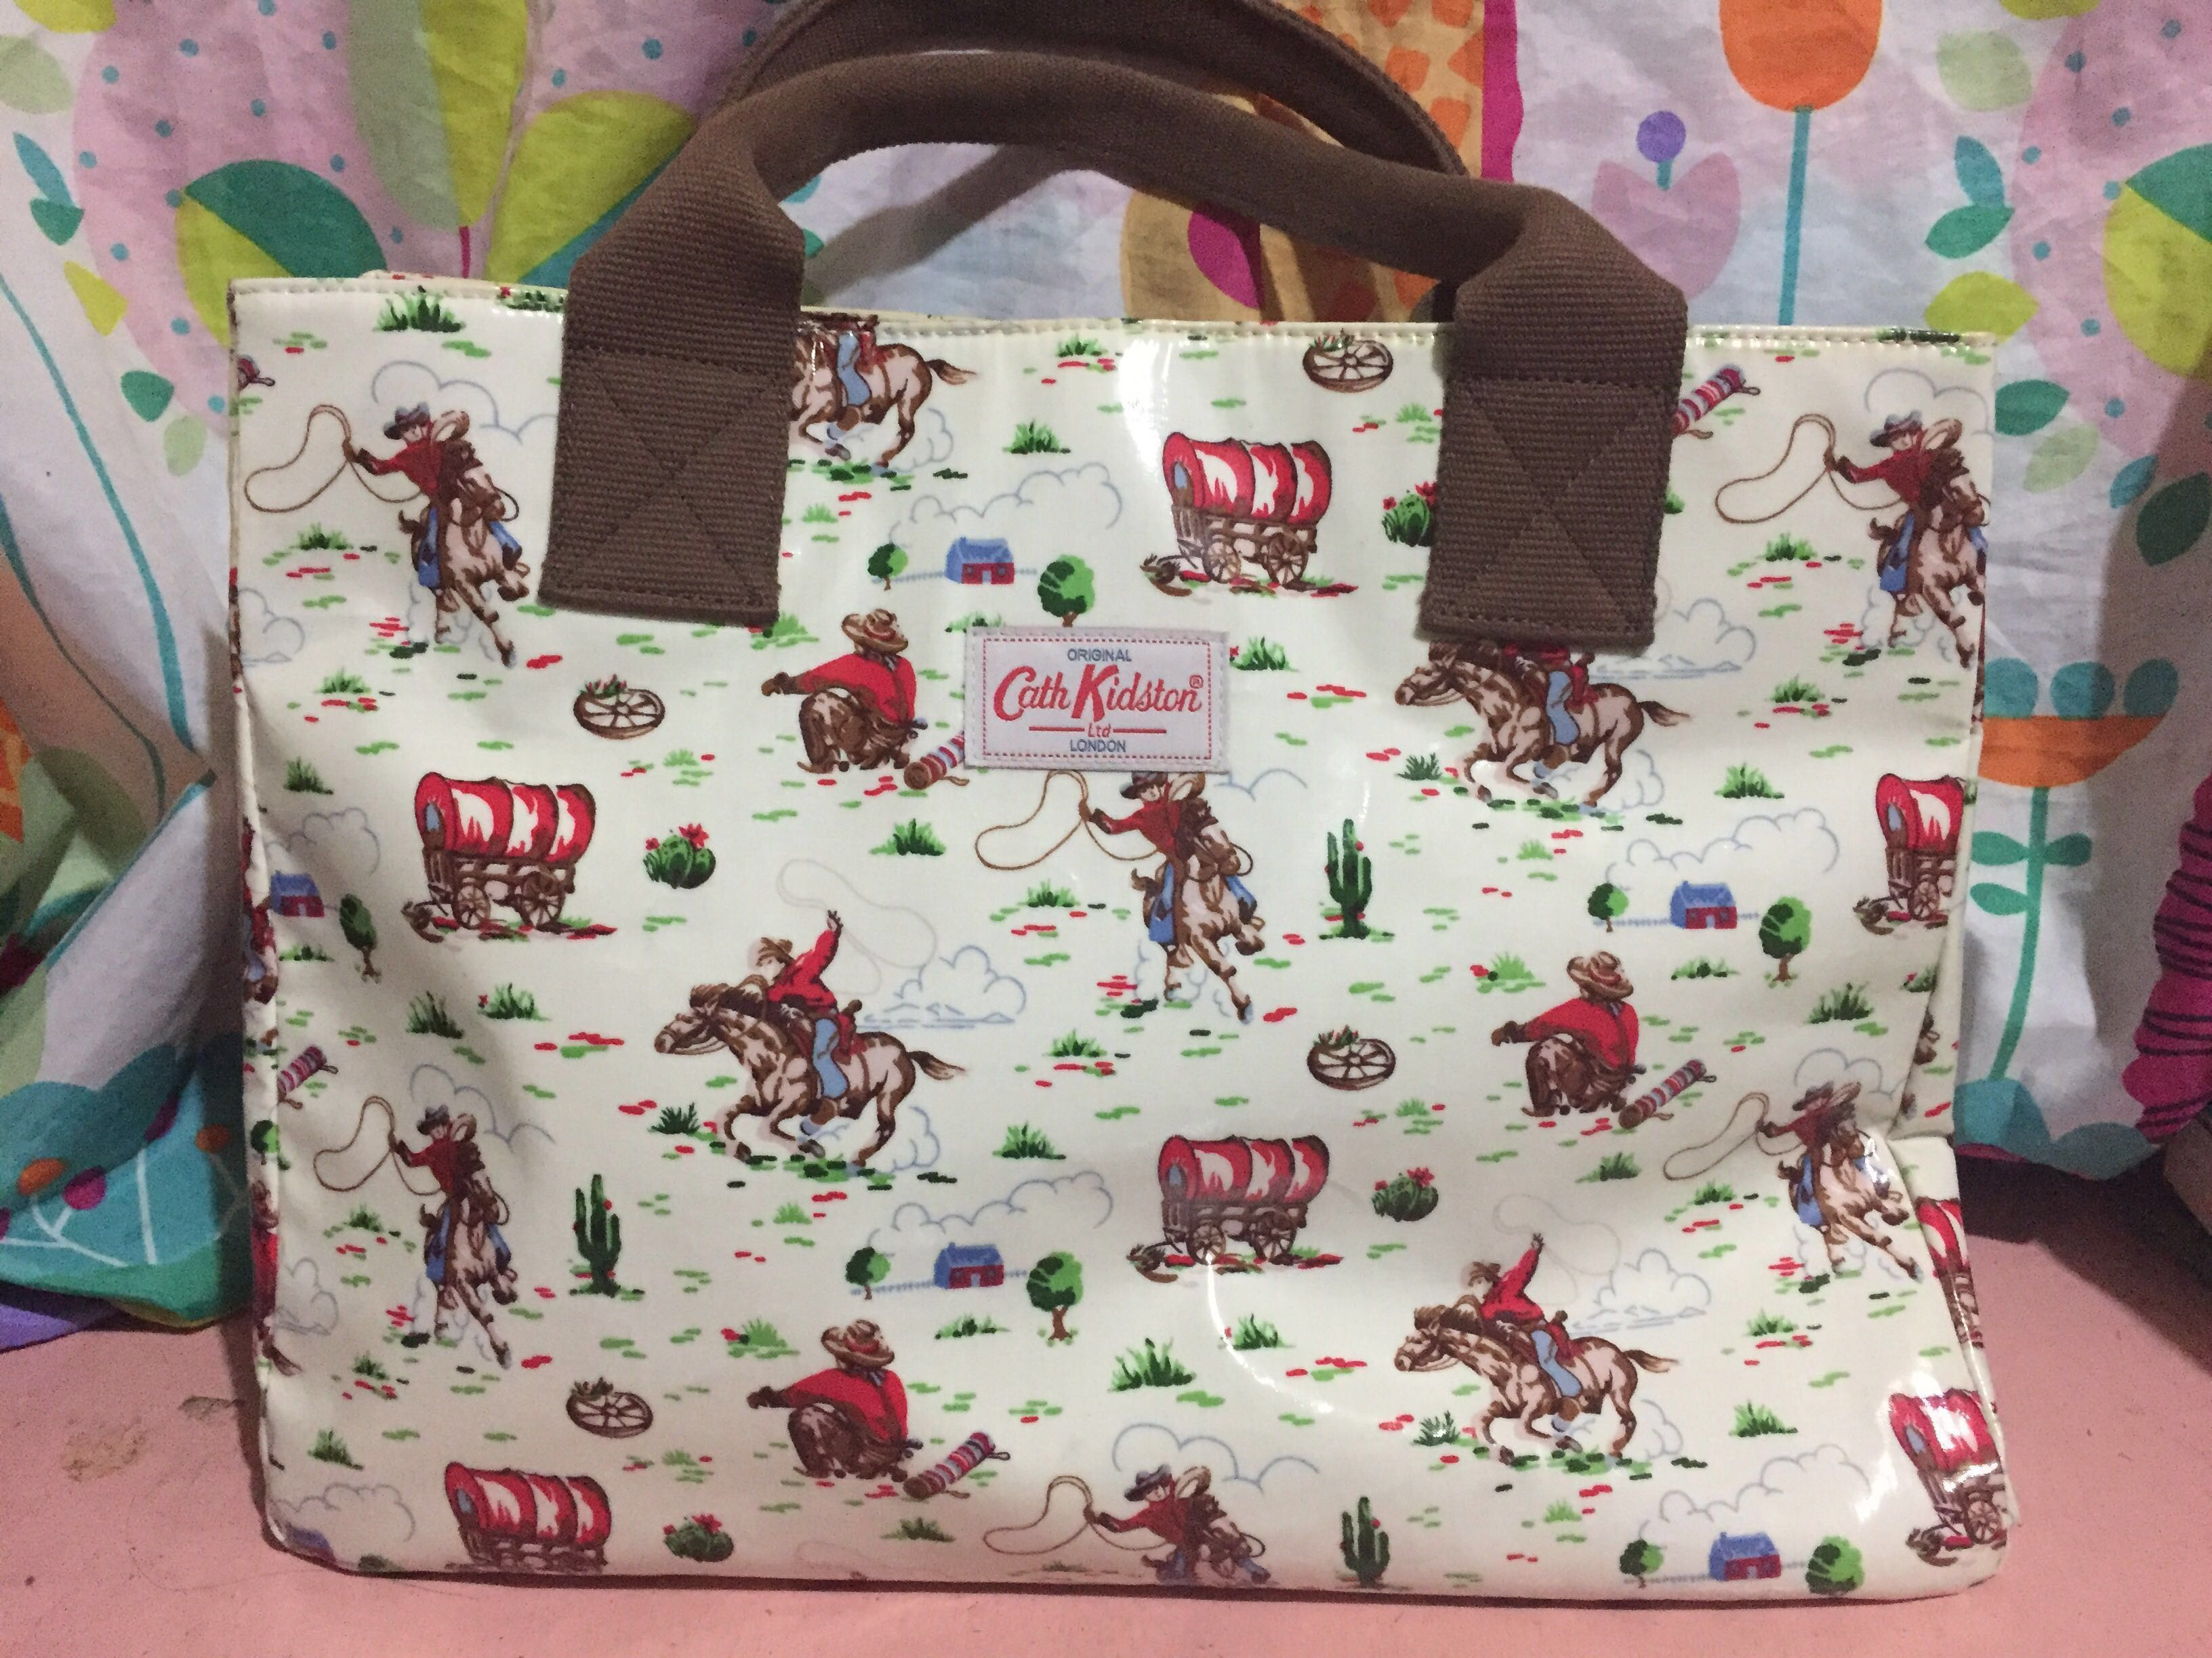 Cath Kidston Authentic (bought in Japan)